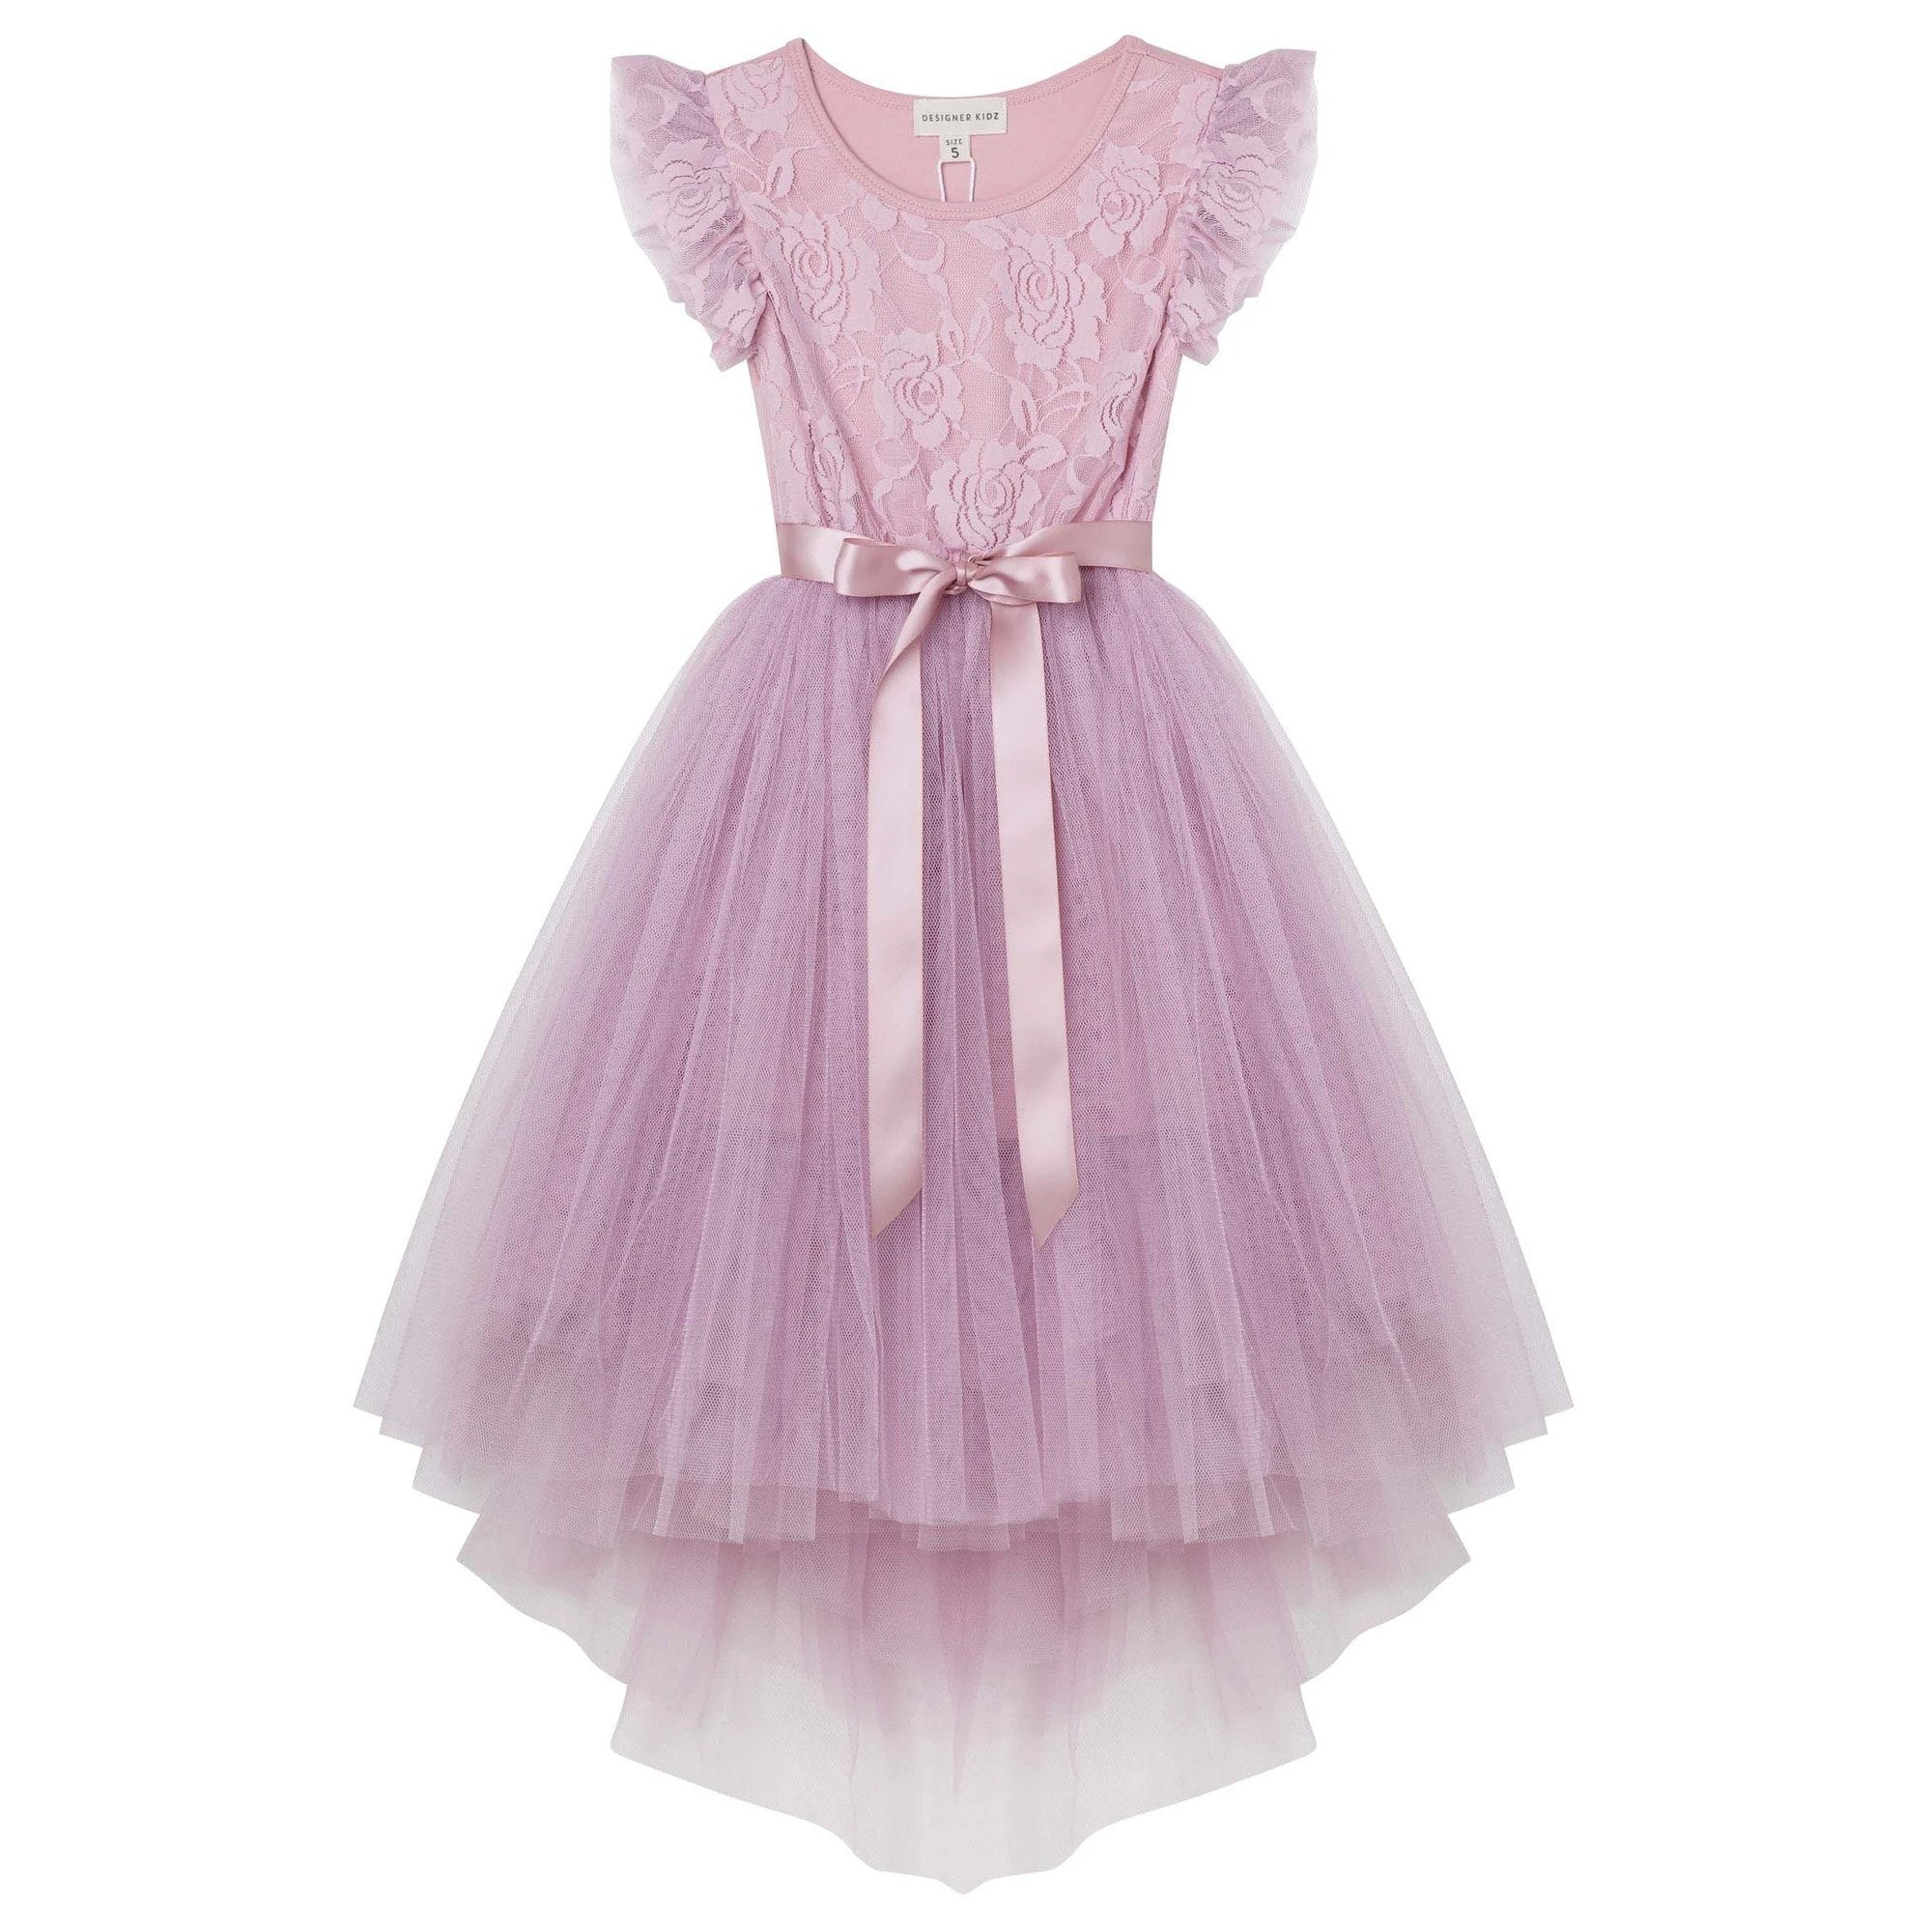 Libby Lace Tutu Dress (Truffle)